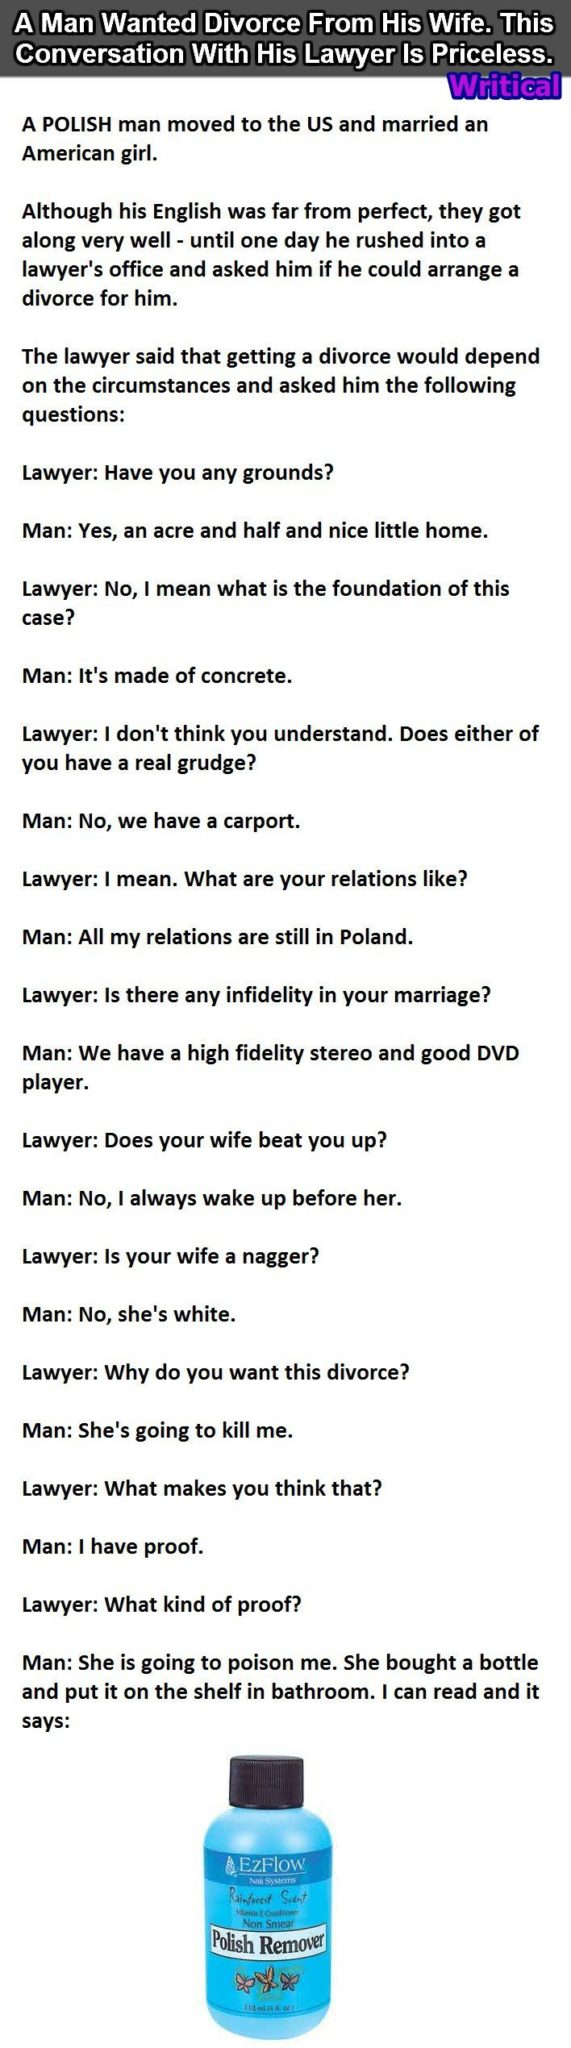 56796c74a0f6 This Polish man wanted divorce but his English was poor. This is Epic. -